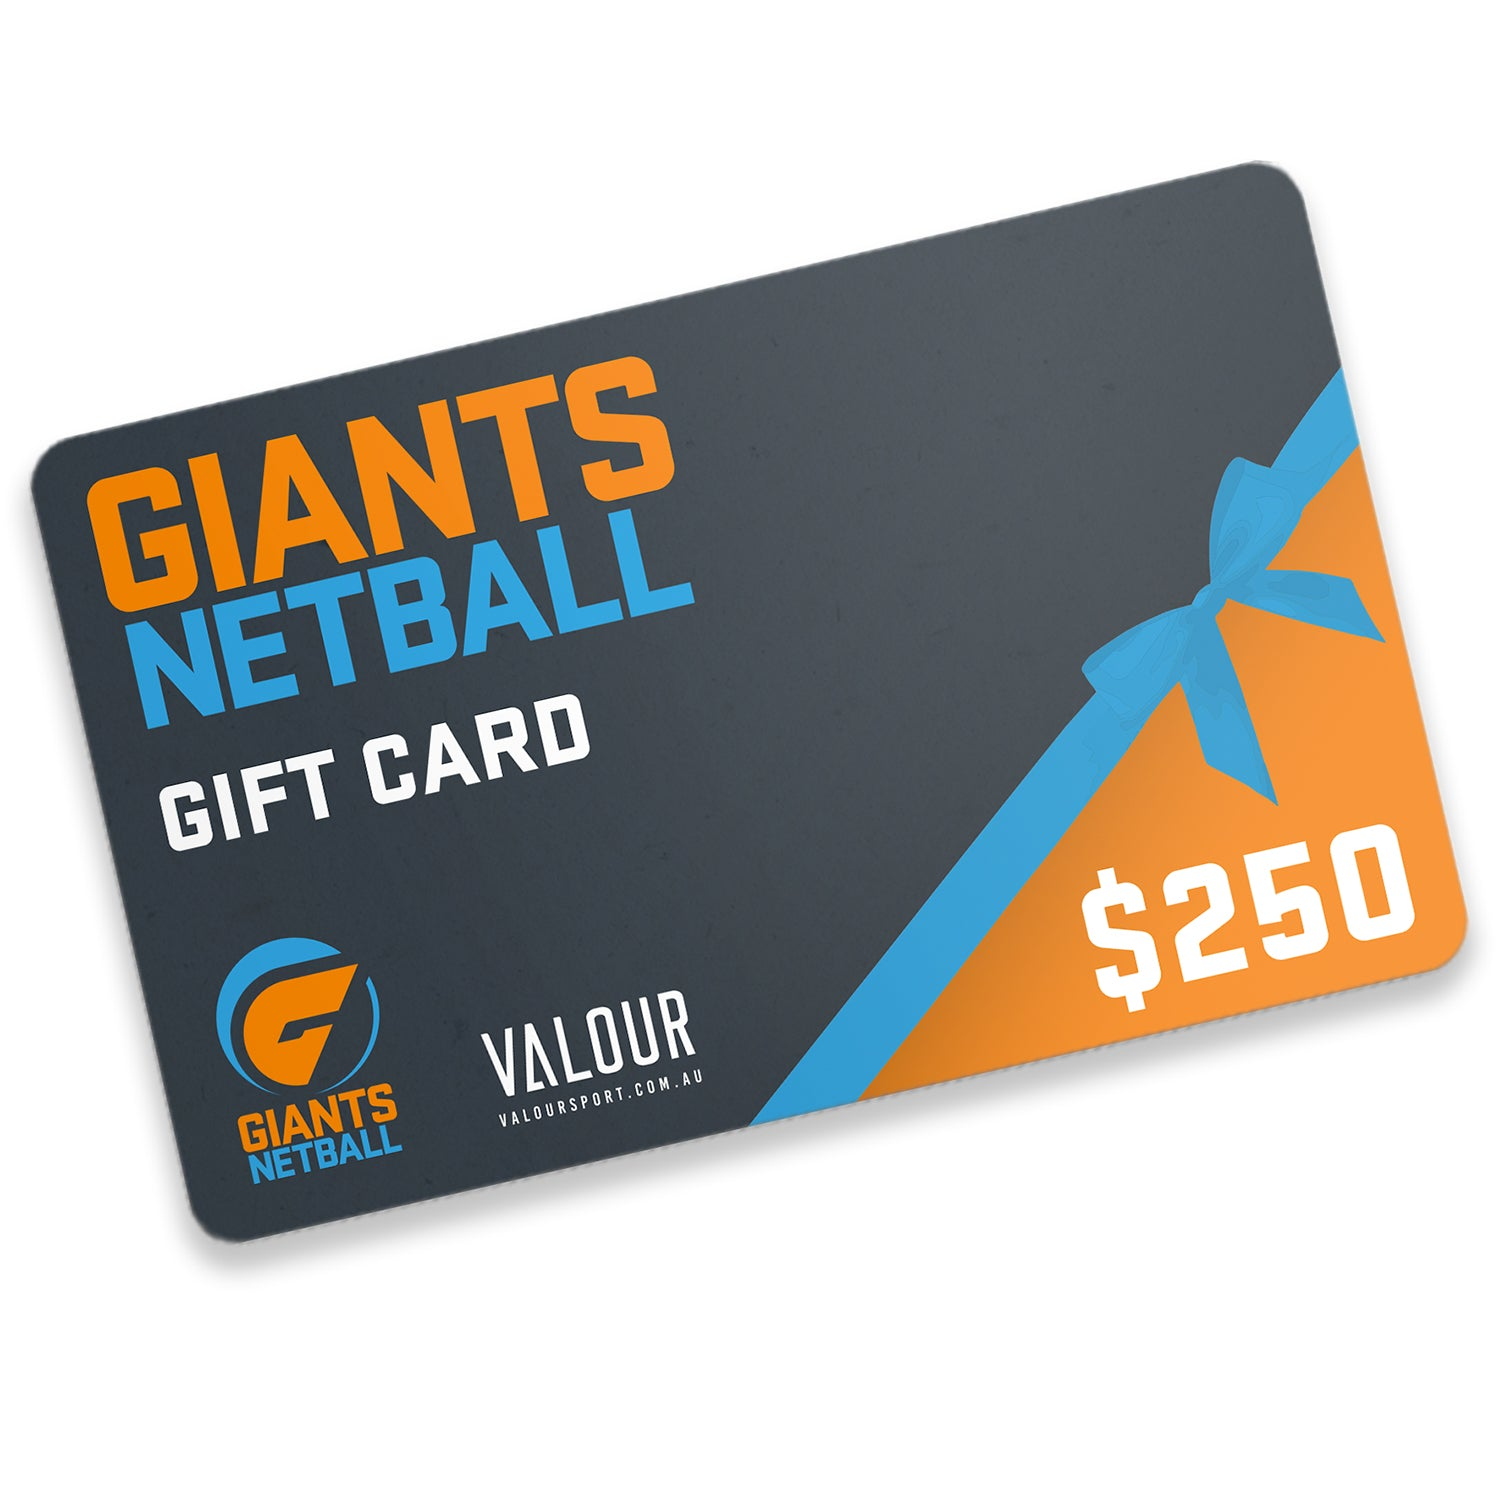 Giants Netball $250 Gift Card